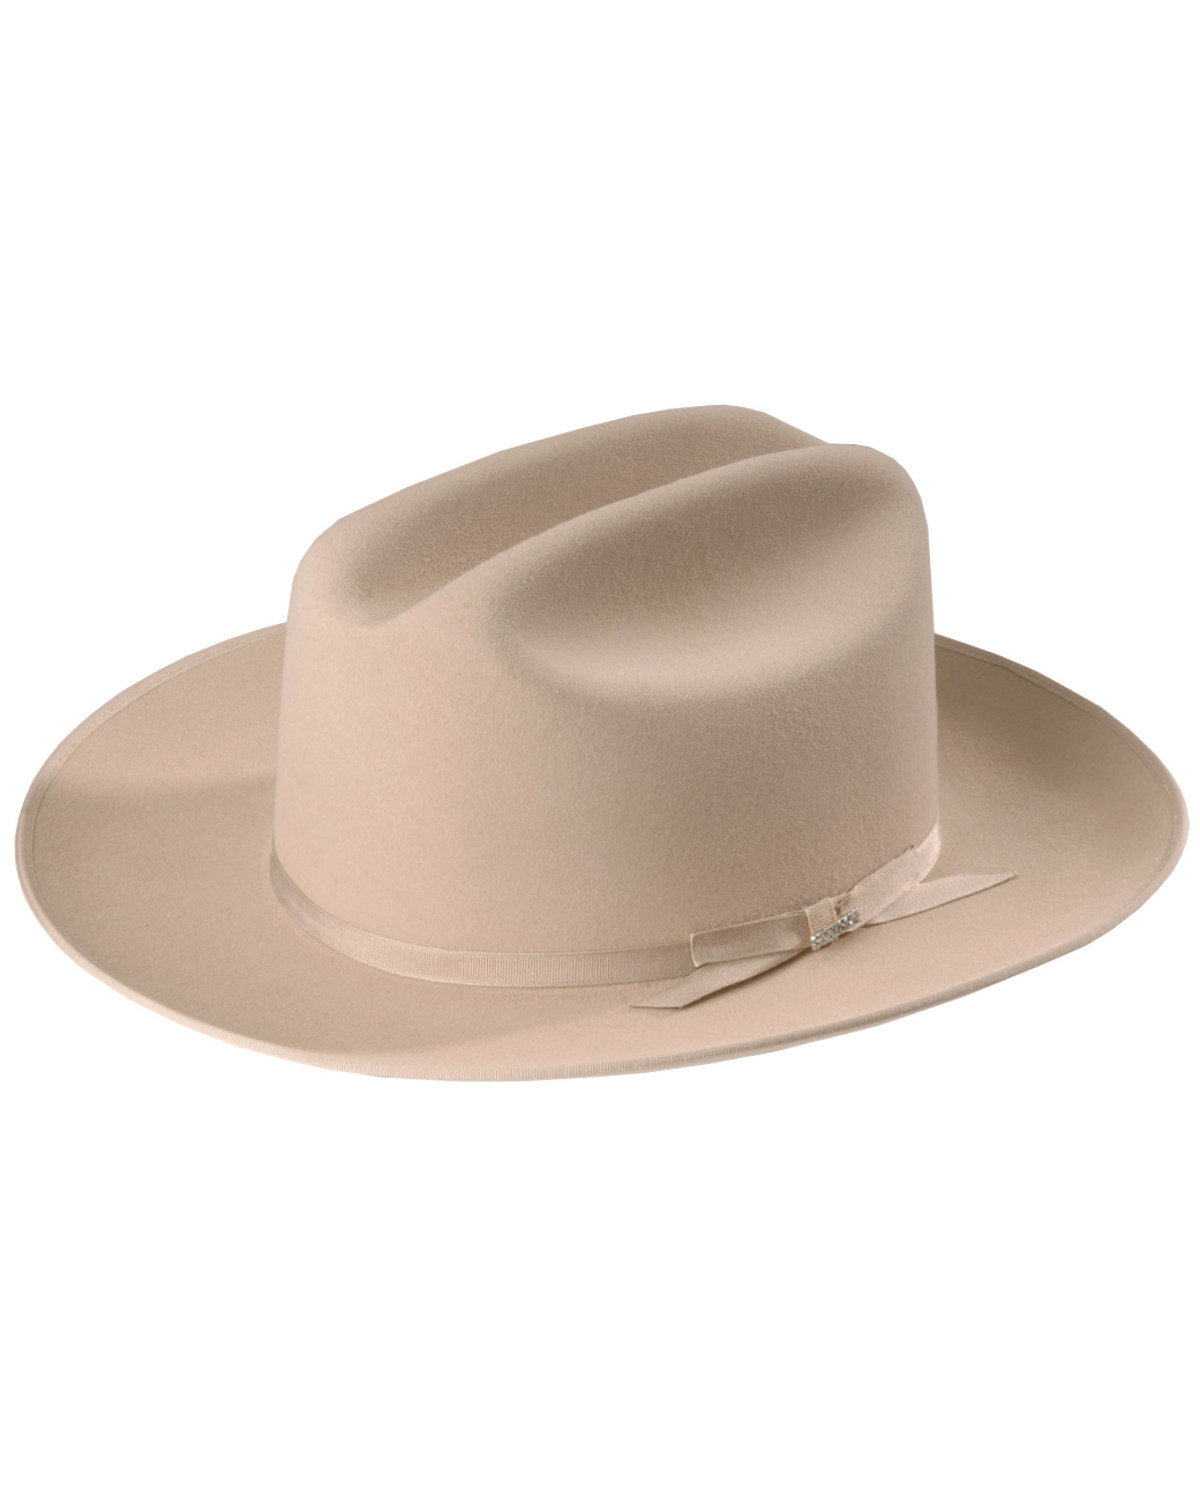 4b24181c1b537 Stetson Open Road 6X Fur Felt Hat